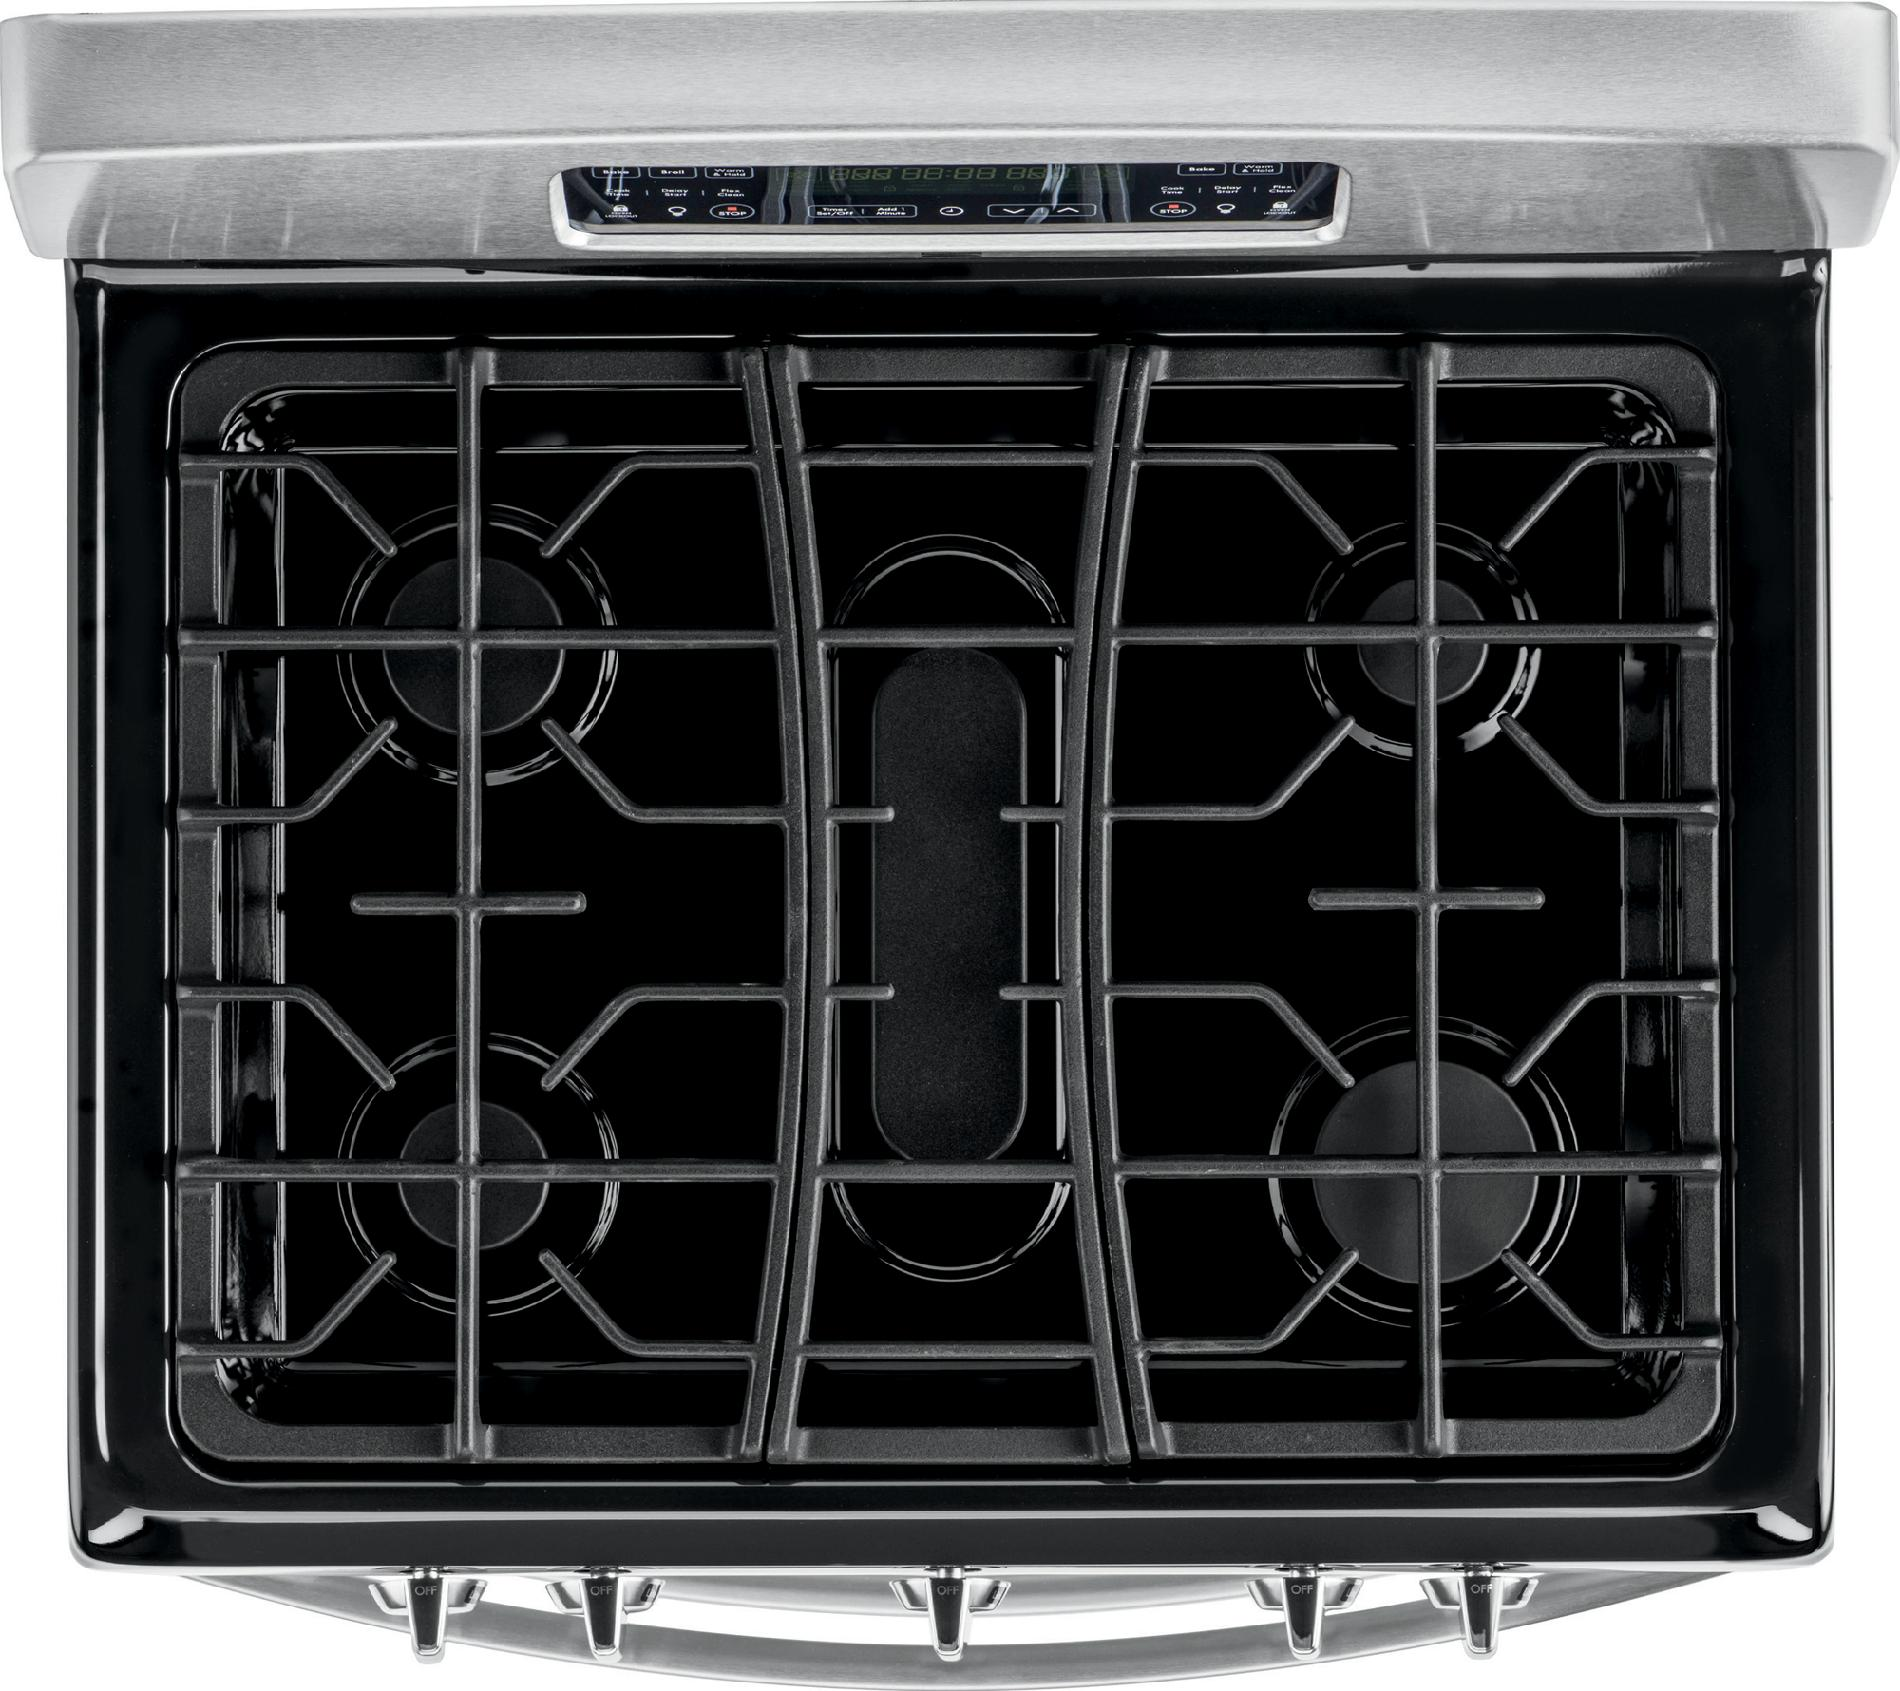 Kenmore 5.8 cu. ft. Double-Oven Gas Range - Stainless Steel w/ Black